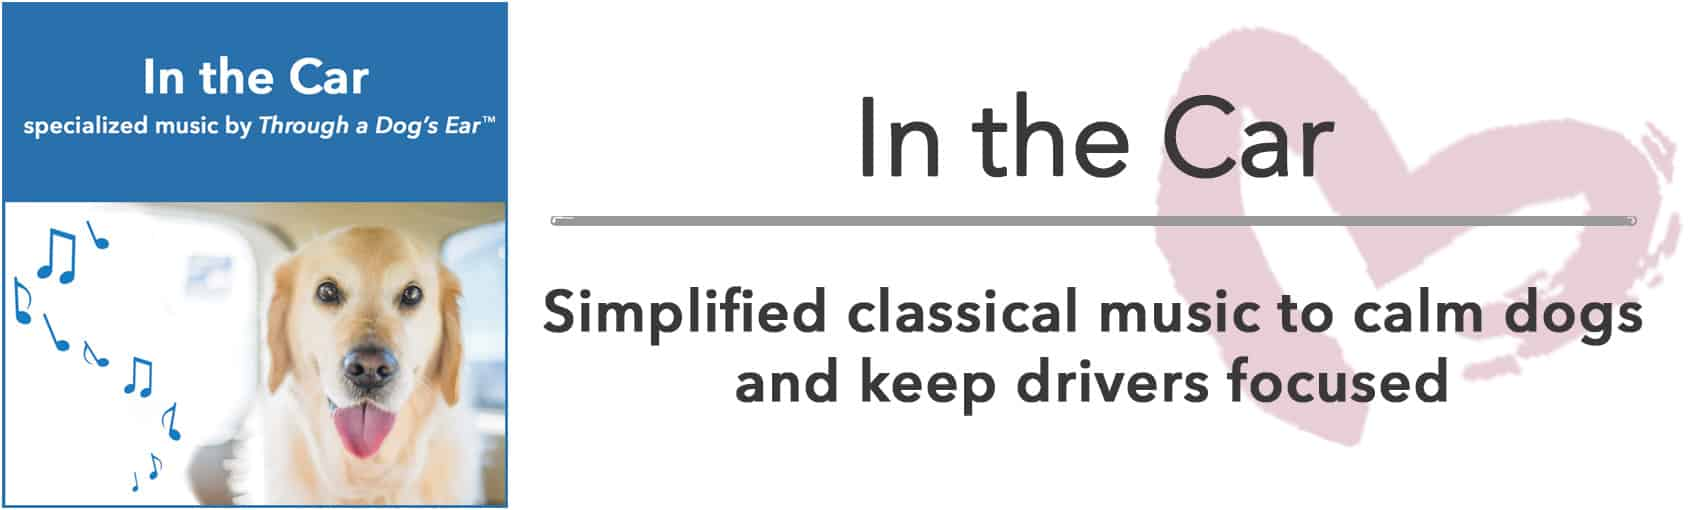 classical music to calm dogs in cars